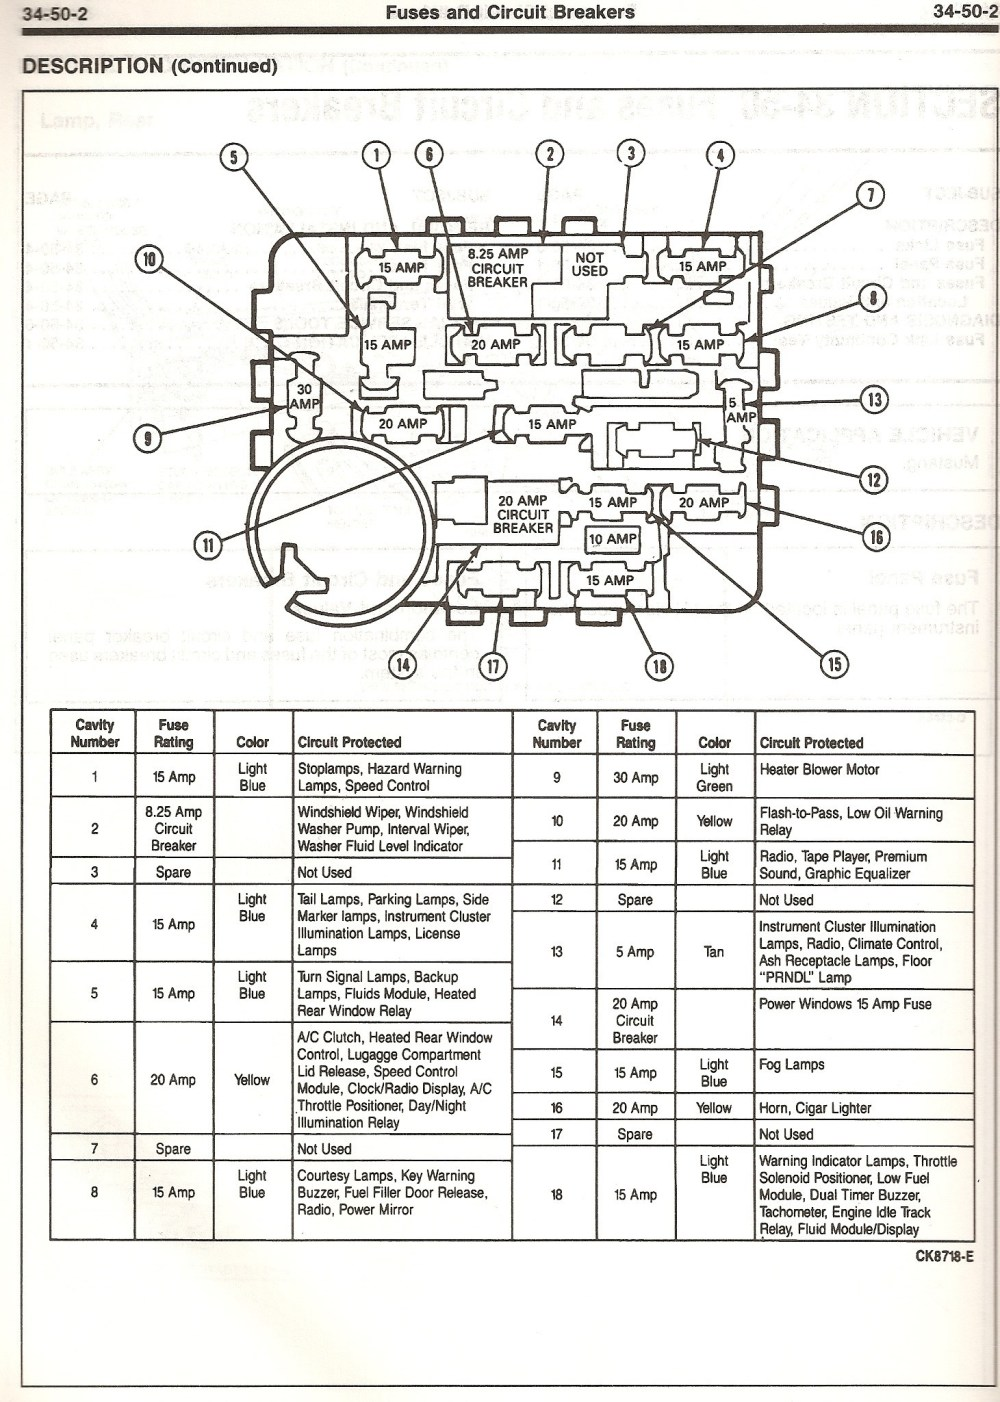 medium resolution of 1991 ford explorer fuse panel diagram wiring diagrams favorites 1991 aerostar fuse panel diagram wiring diagram